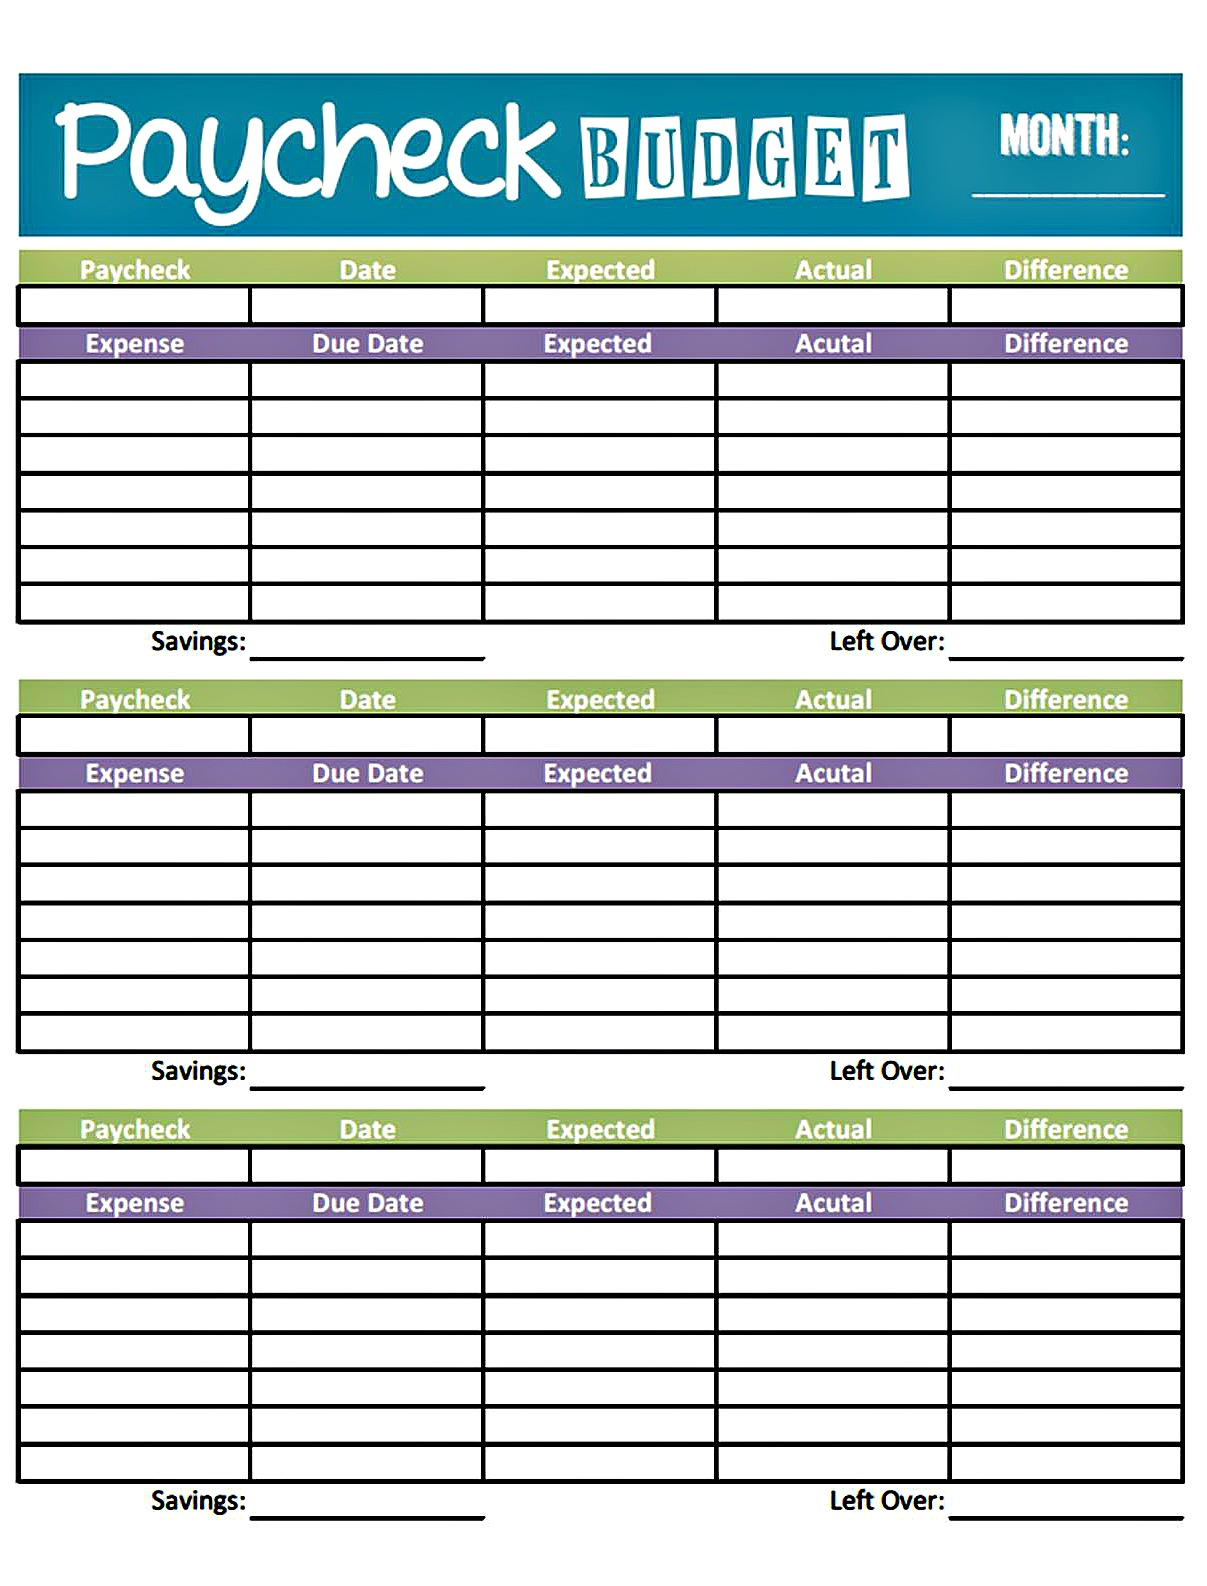 worksheet Monthly Budget Worksheet Printable blank budget template simple monthly free worksheets printable worksheet and best images of printable